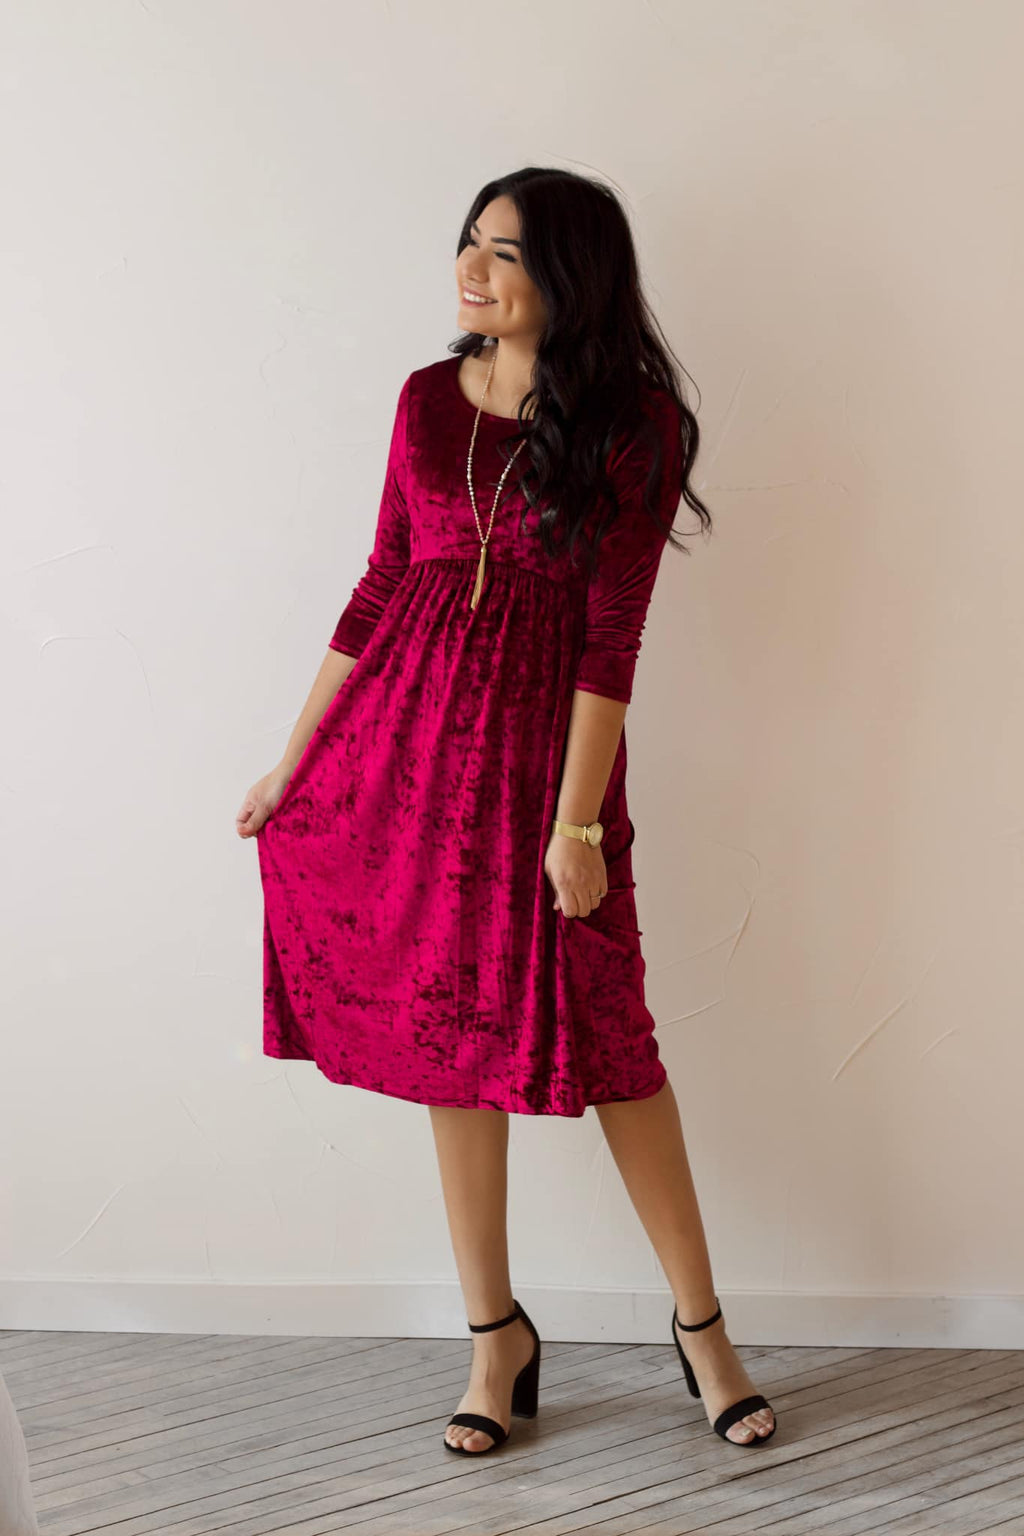 Merry & Bright Velvet Dress - Red Wine (Pre-Order ships 12/4)